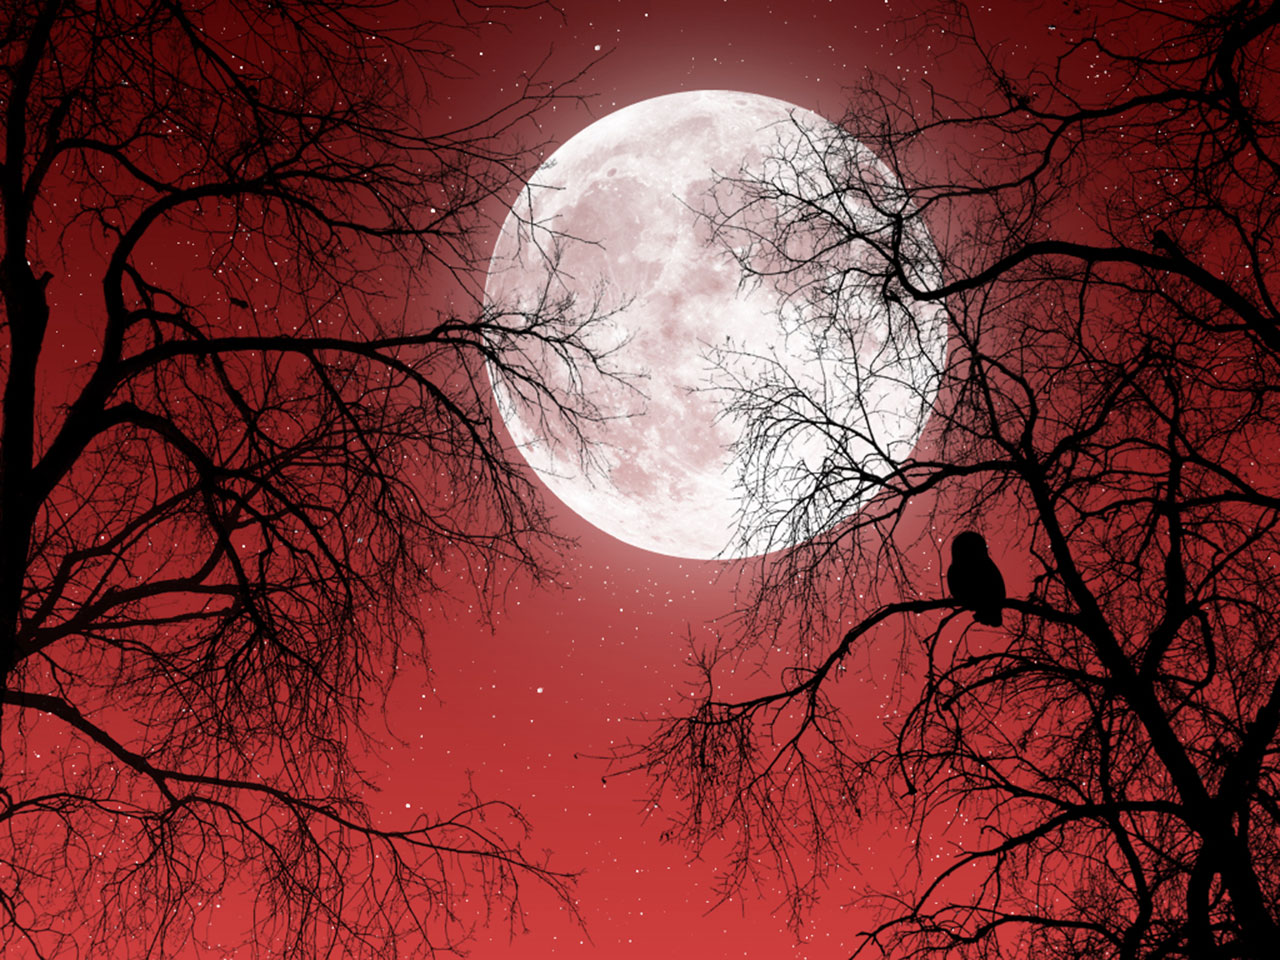 http://4.bp.blogspot.com/-0nnbYTHYG-Y/T930lyIuIAI/AAAAAAAAAK4/ULlKCIz5ur4/s1600/Night-Owl-And-Moon-Wallpaper.jpg